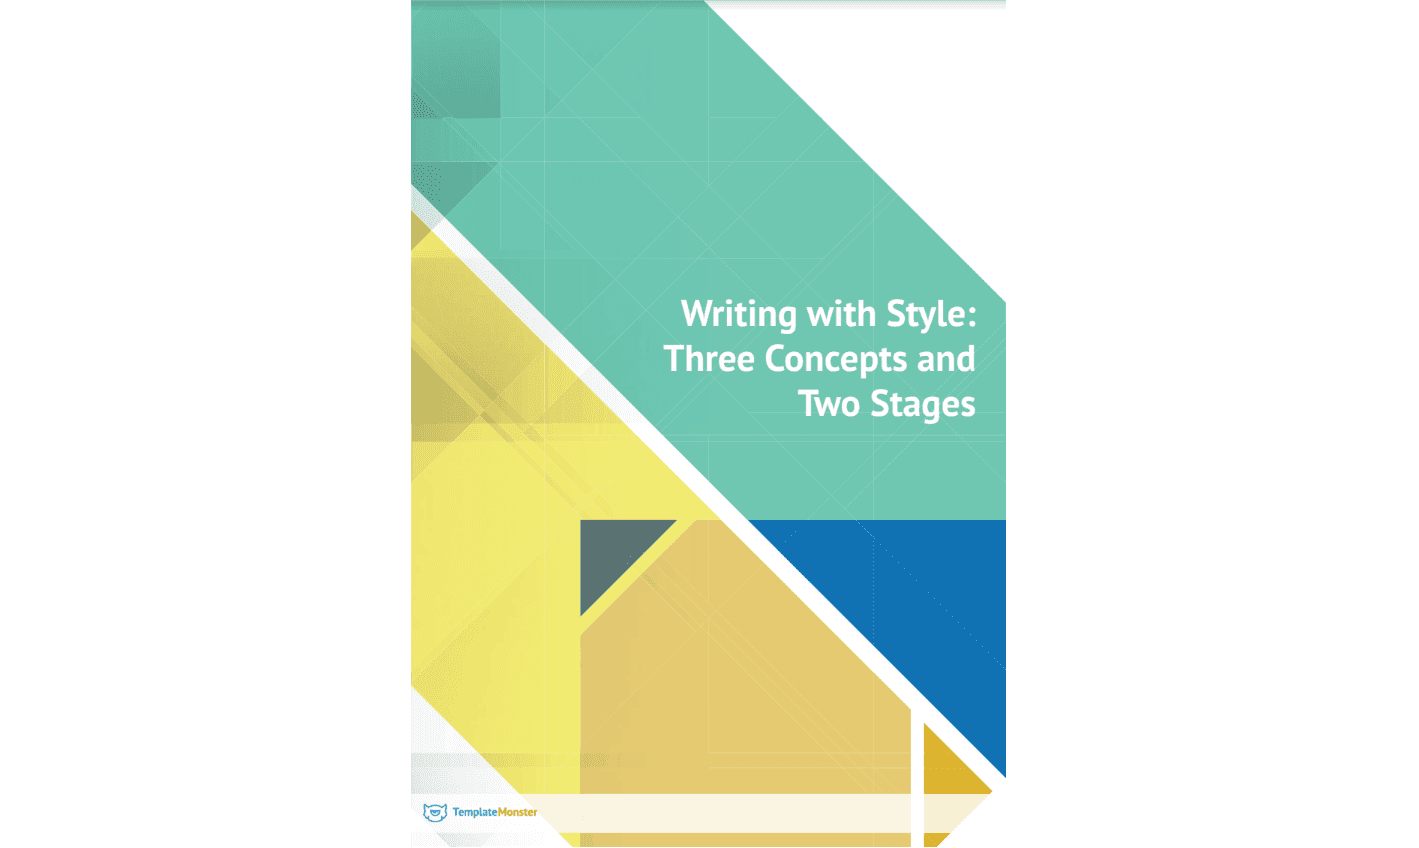 Writing With Style: Three Concepts and Two Stages (book cover)